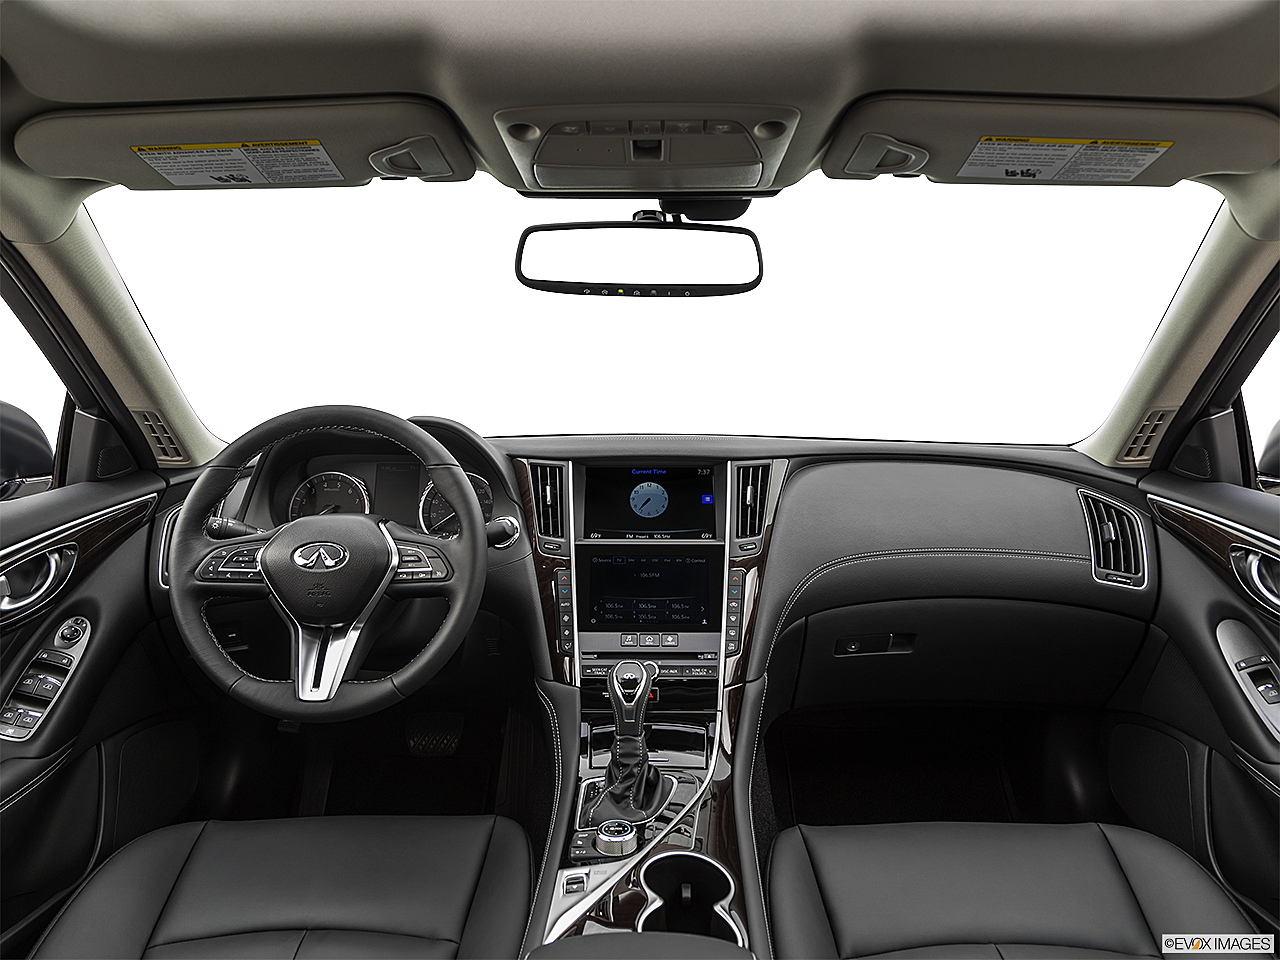 2019 Infiniti Q50 Luxe, centered wide dash shot